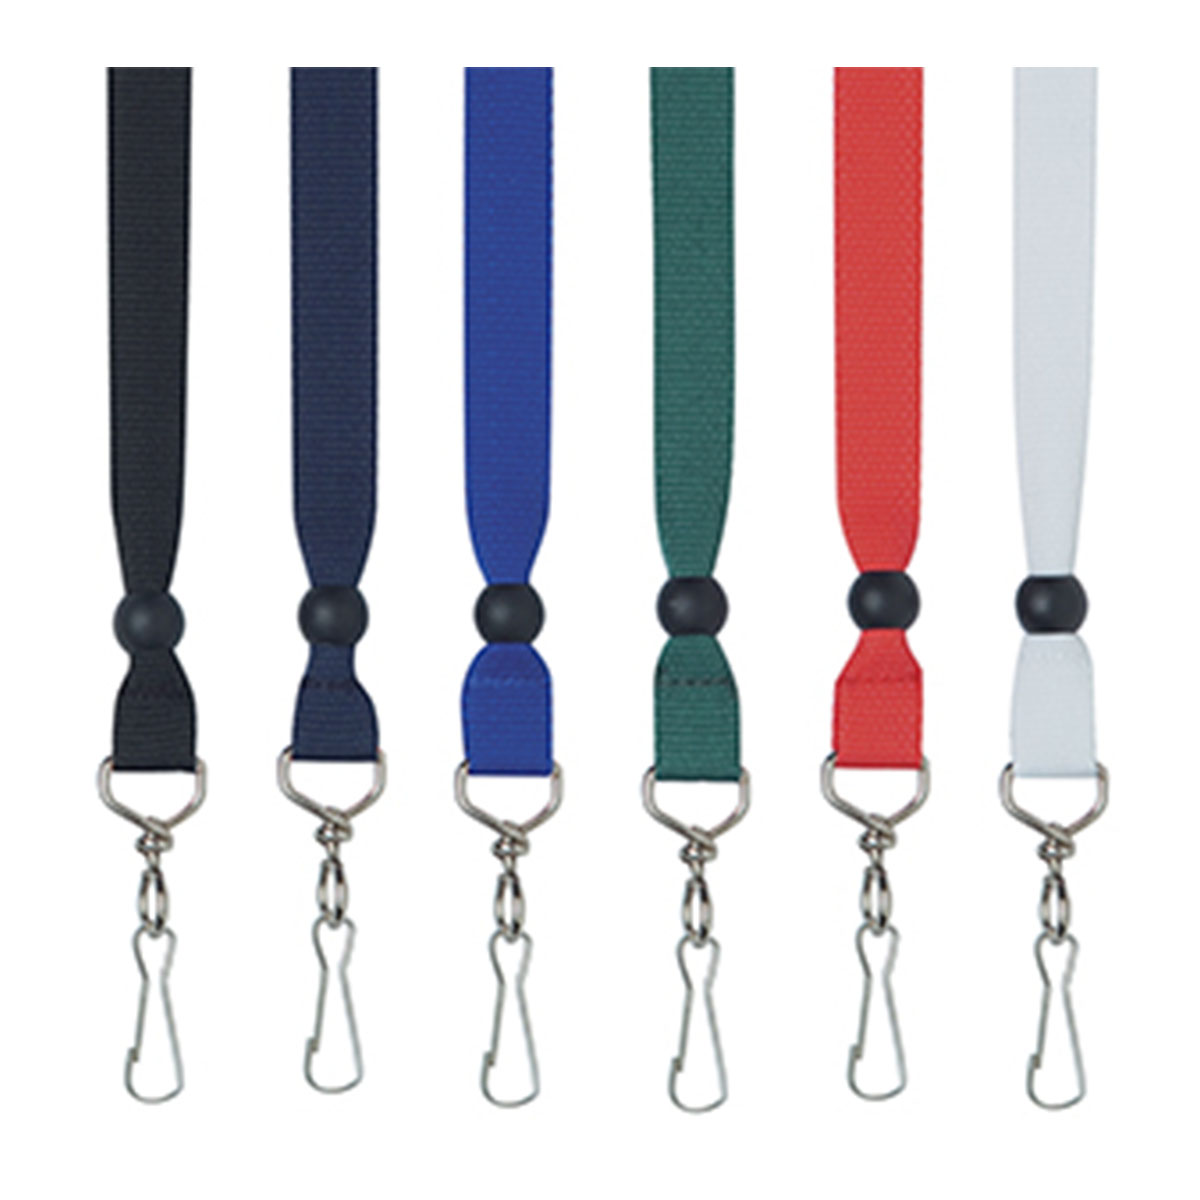 Ribbon Lanyard-Black.